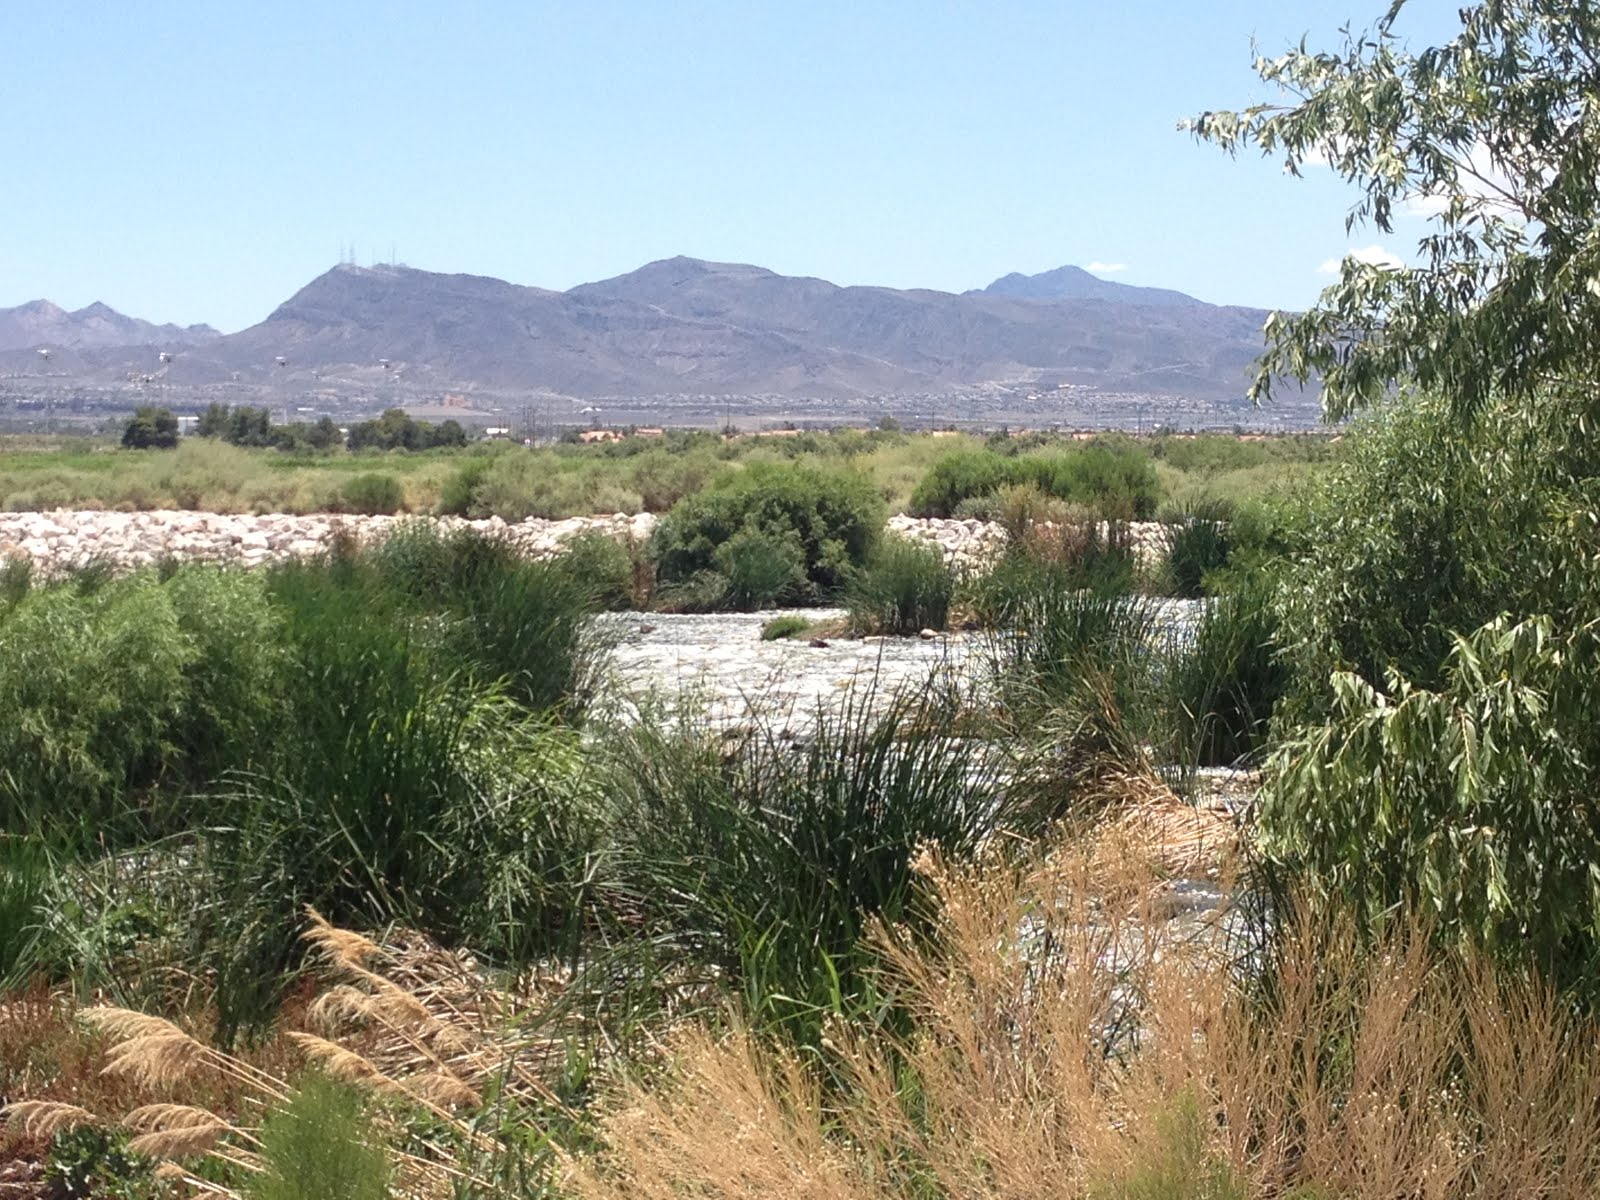 bike ride on sunday at clark county wetlands park the trail crosses and follows the las vegas wash which drains the las vegas valley